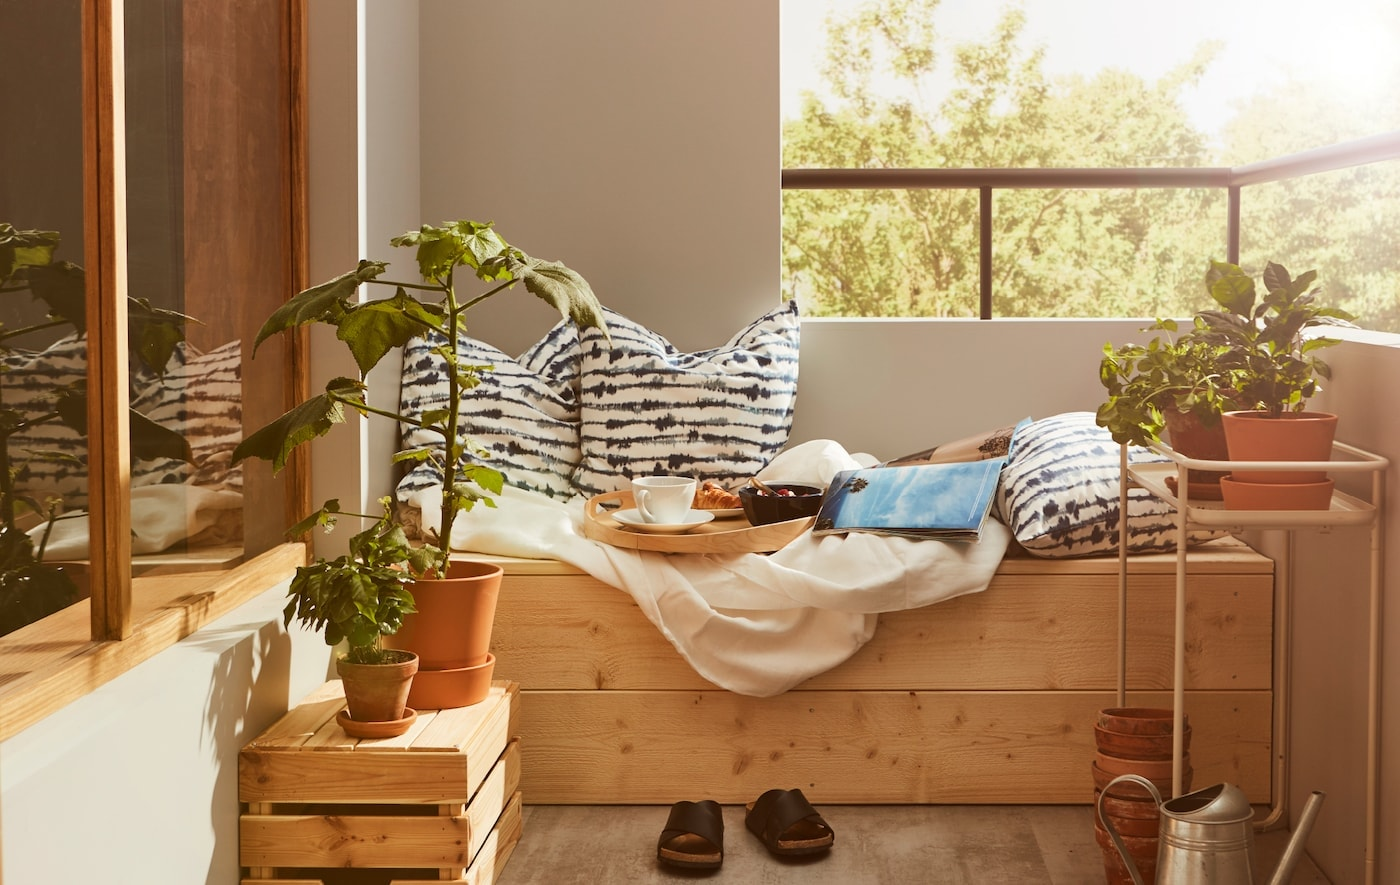 Balcony corner with a raised wooden surface on which lies cushions, bed linen and a tray holding a small breakfast.